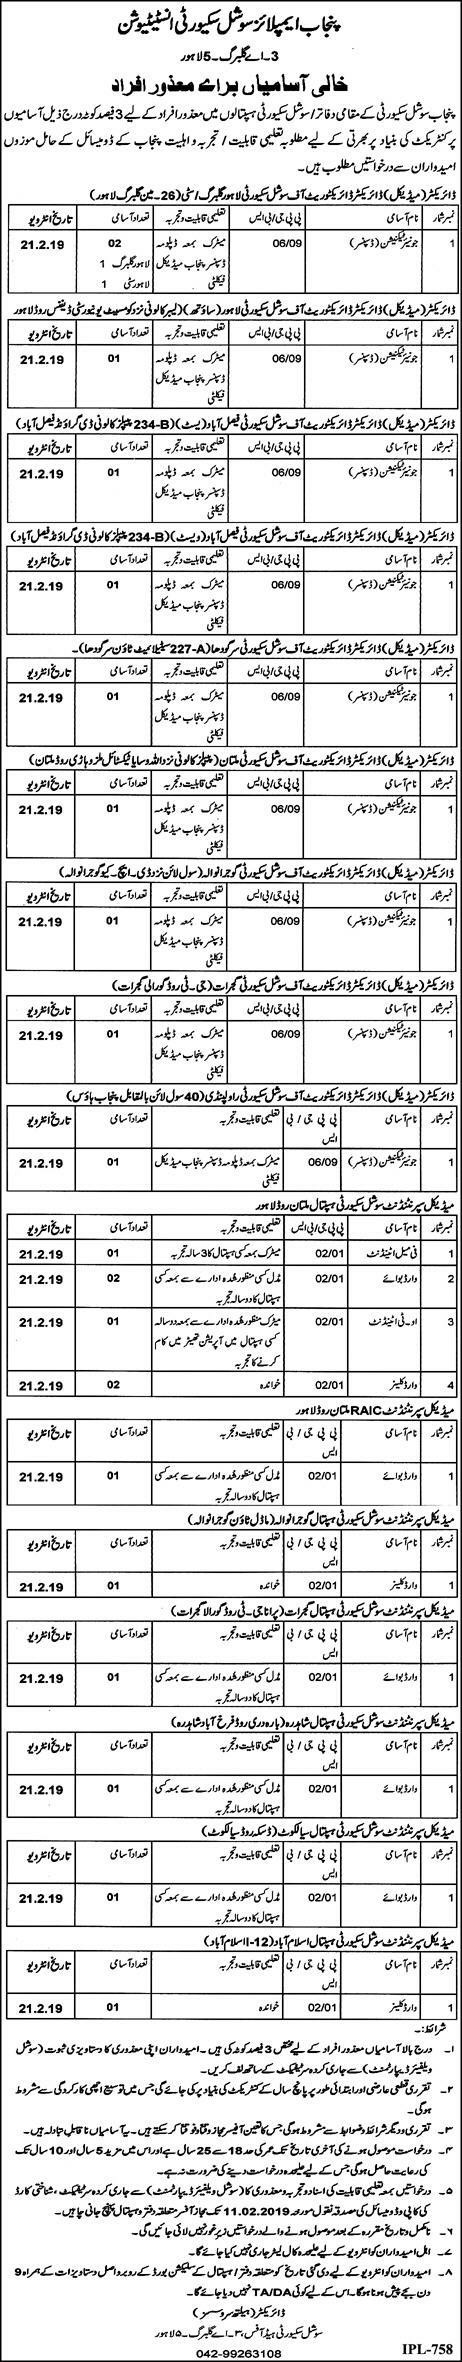 Punjab Employees Social Security Institution Jobs